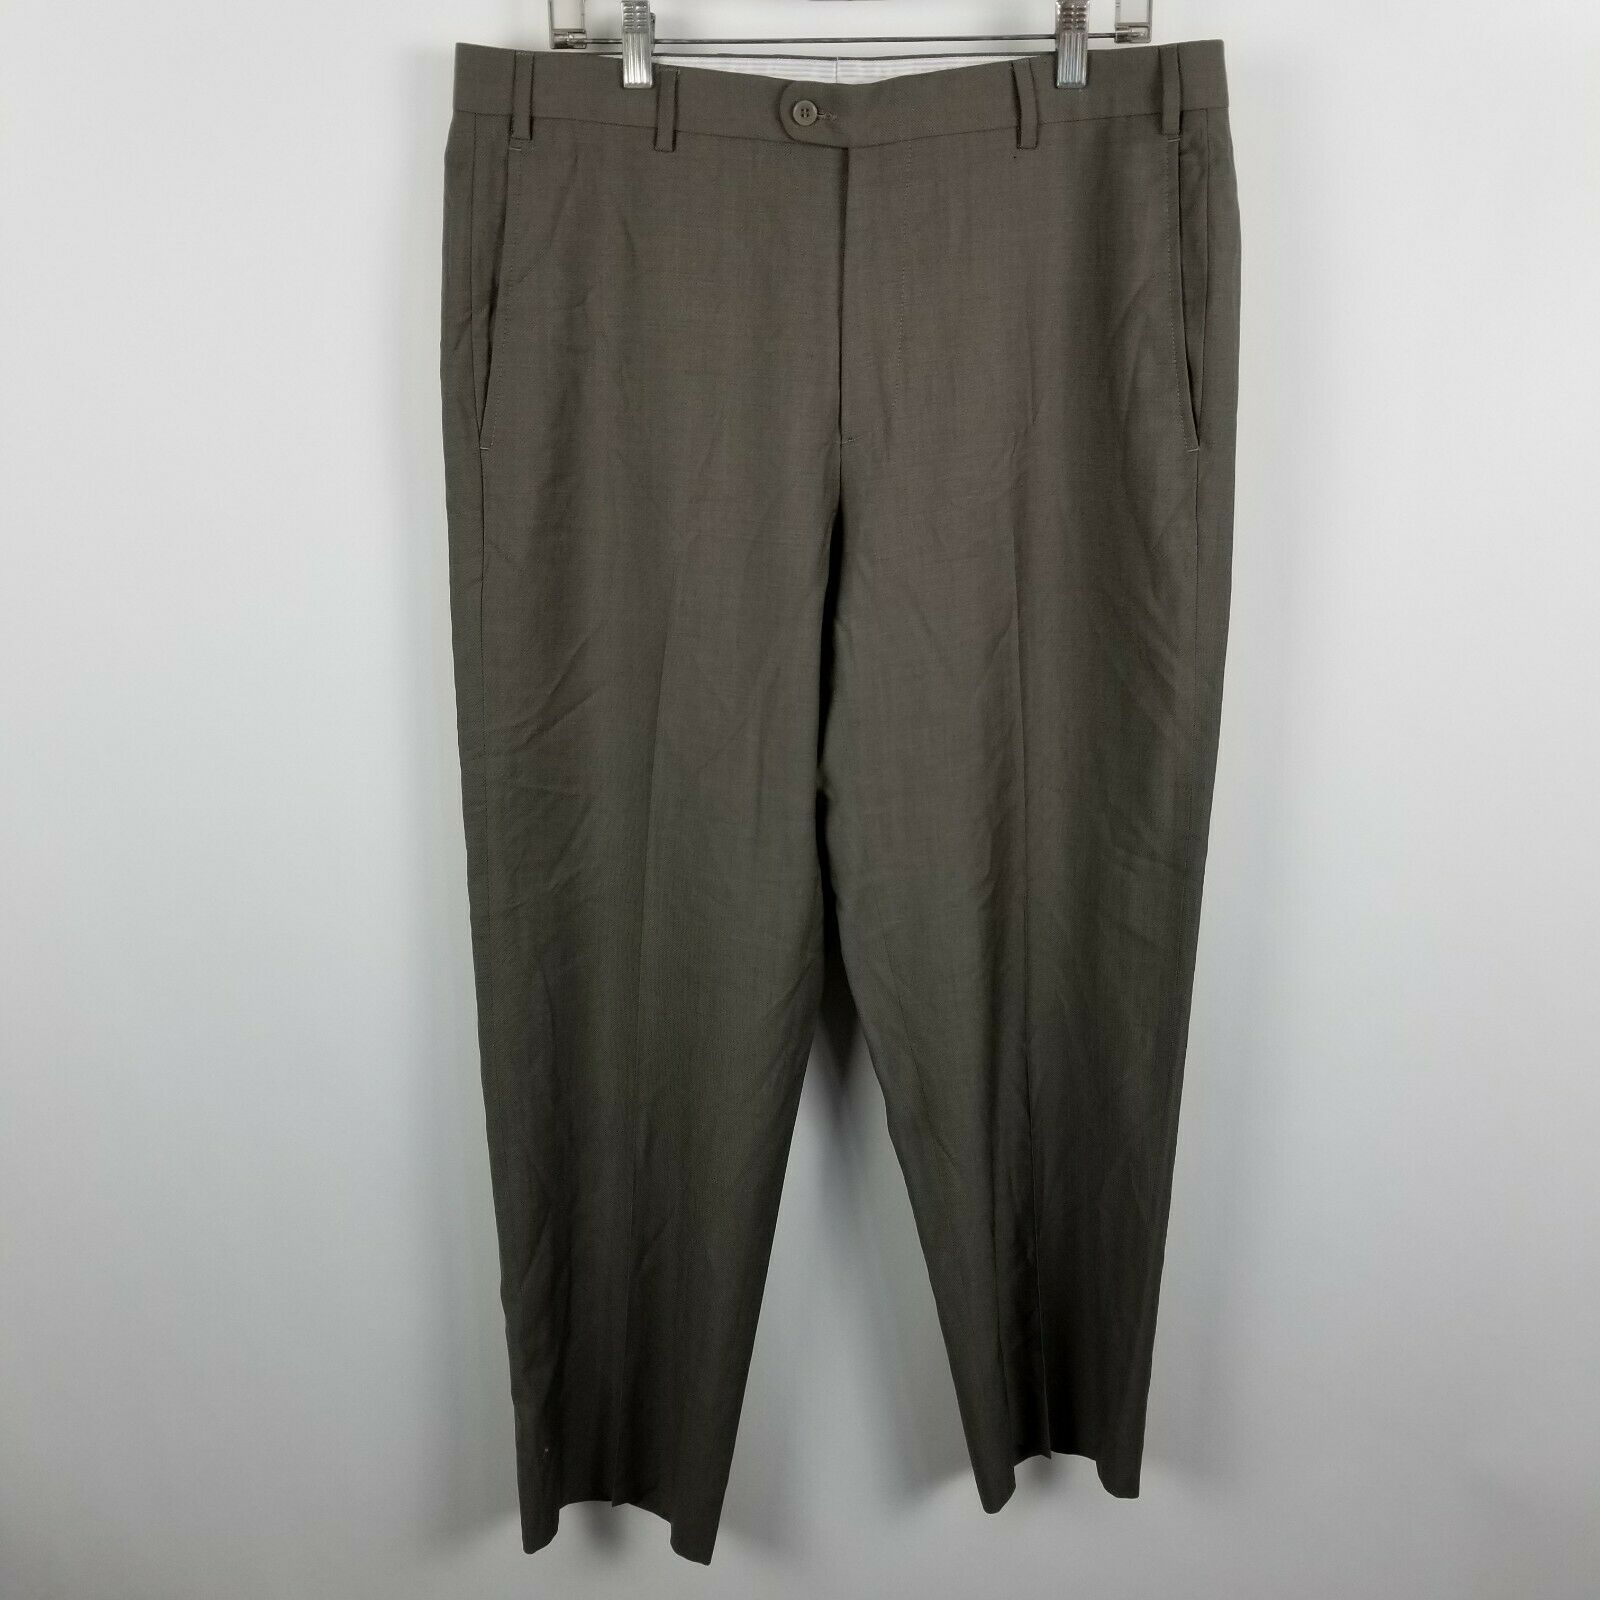 Zanella Nordstrom Todd Mens Flat Front Green-ish Brown Dress Pants Size 35x27